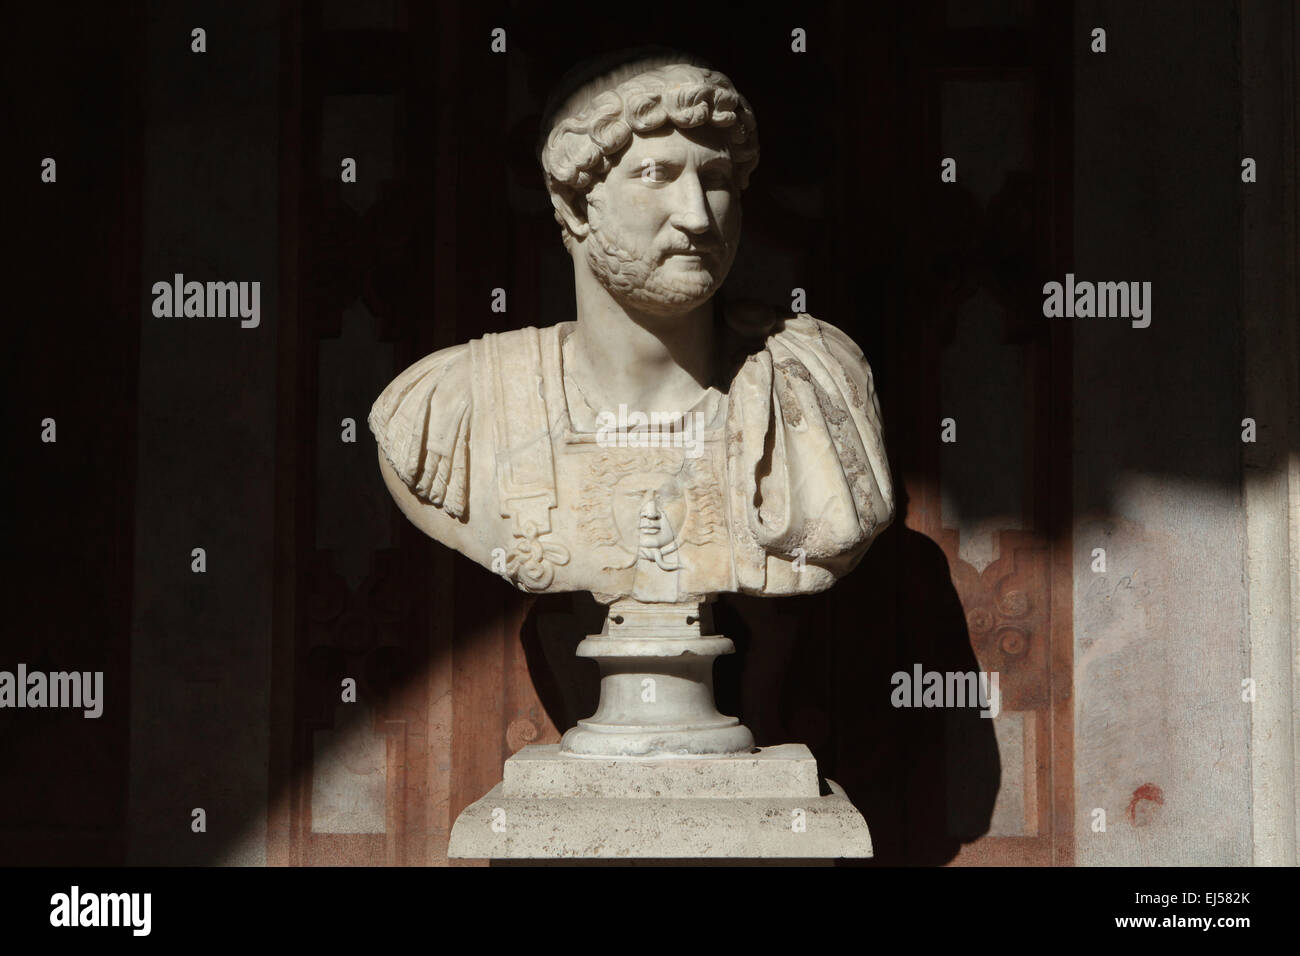 Roman emperor Hadrian. Roman marble bust from 2nd century AD. National Roman Museum, Palazzo Altemps, Rome, Italy. - Stock Image